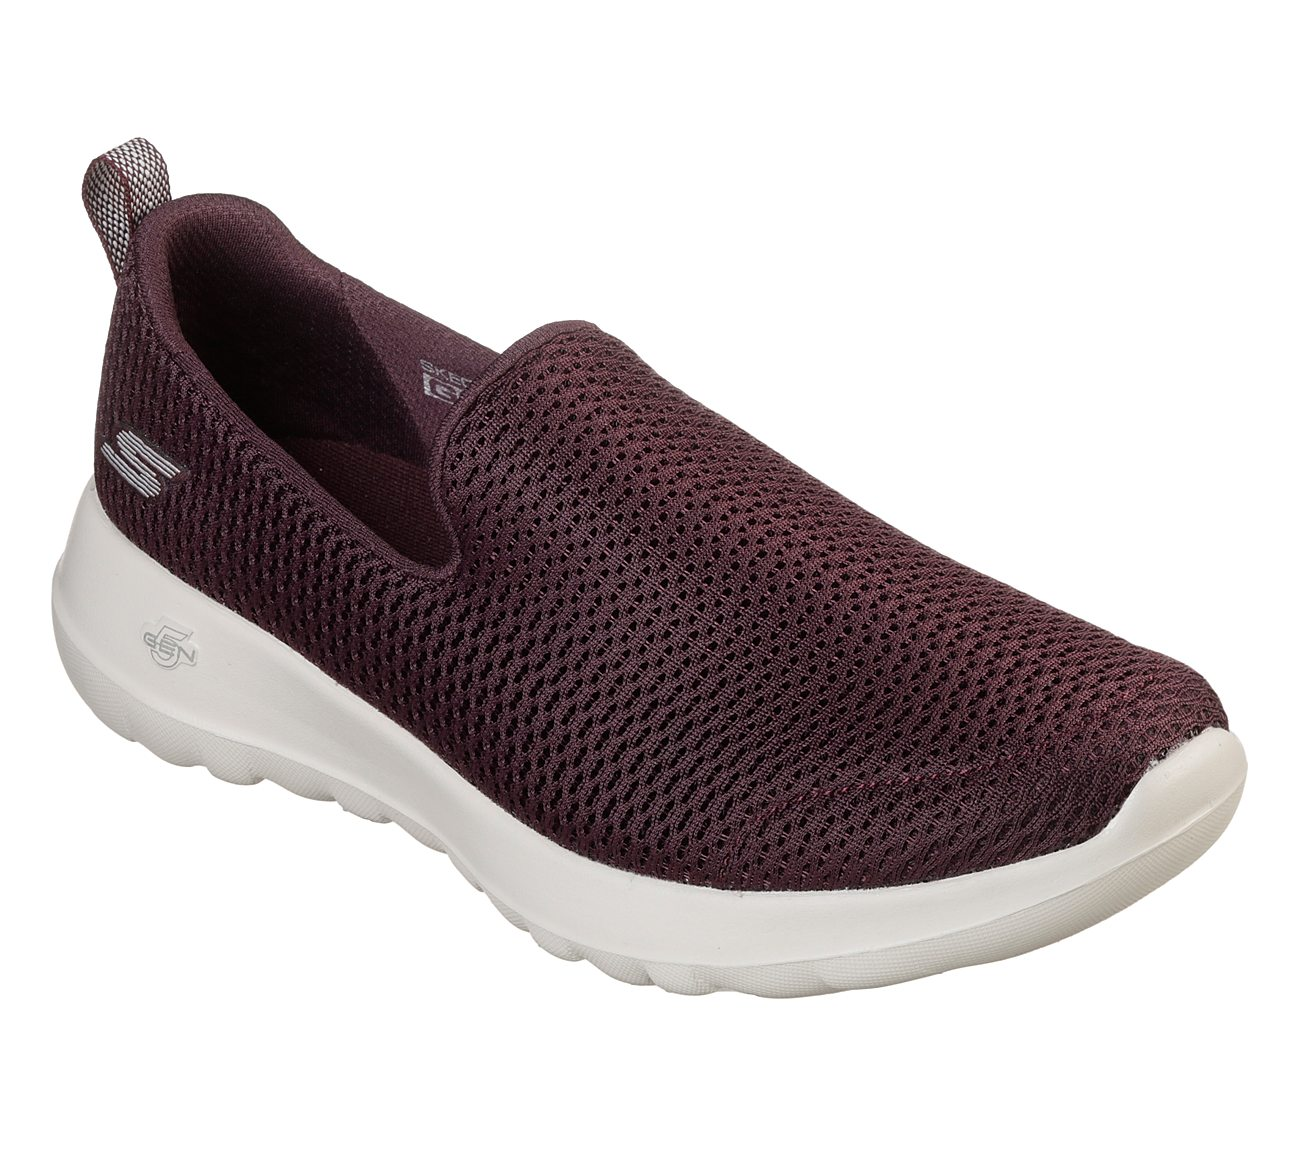 Buy SKECHERS Skechers GOwalk Joy 60,00 Skechers Performance Schuhes only 60,00 Joy   551cf2